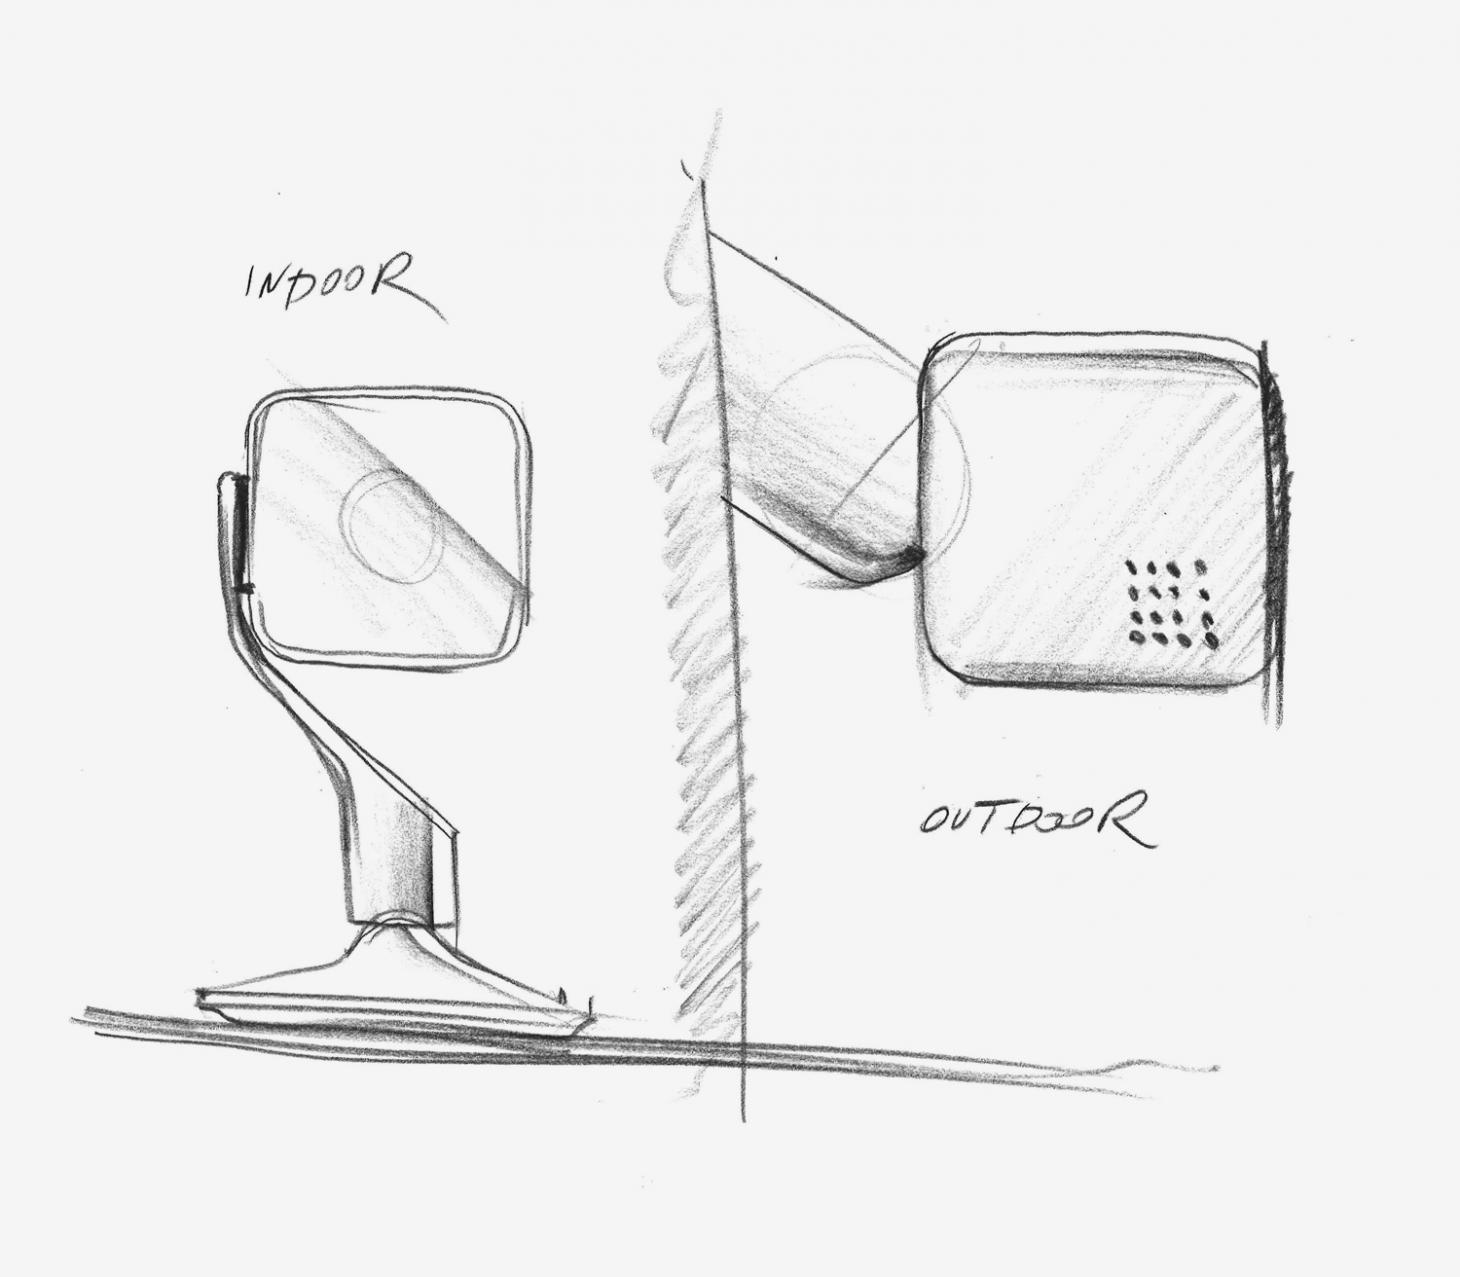 Sketch of Hive View Outdoor, by Yves Behar